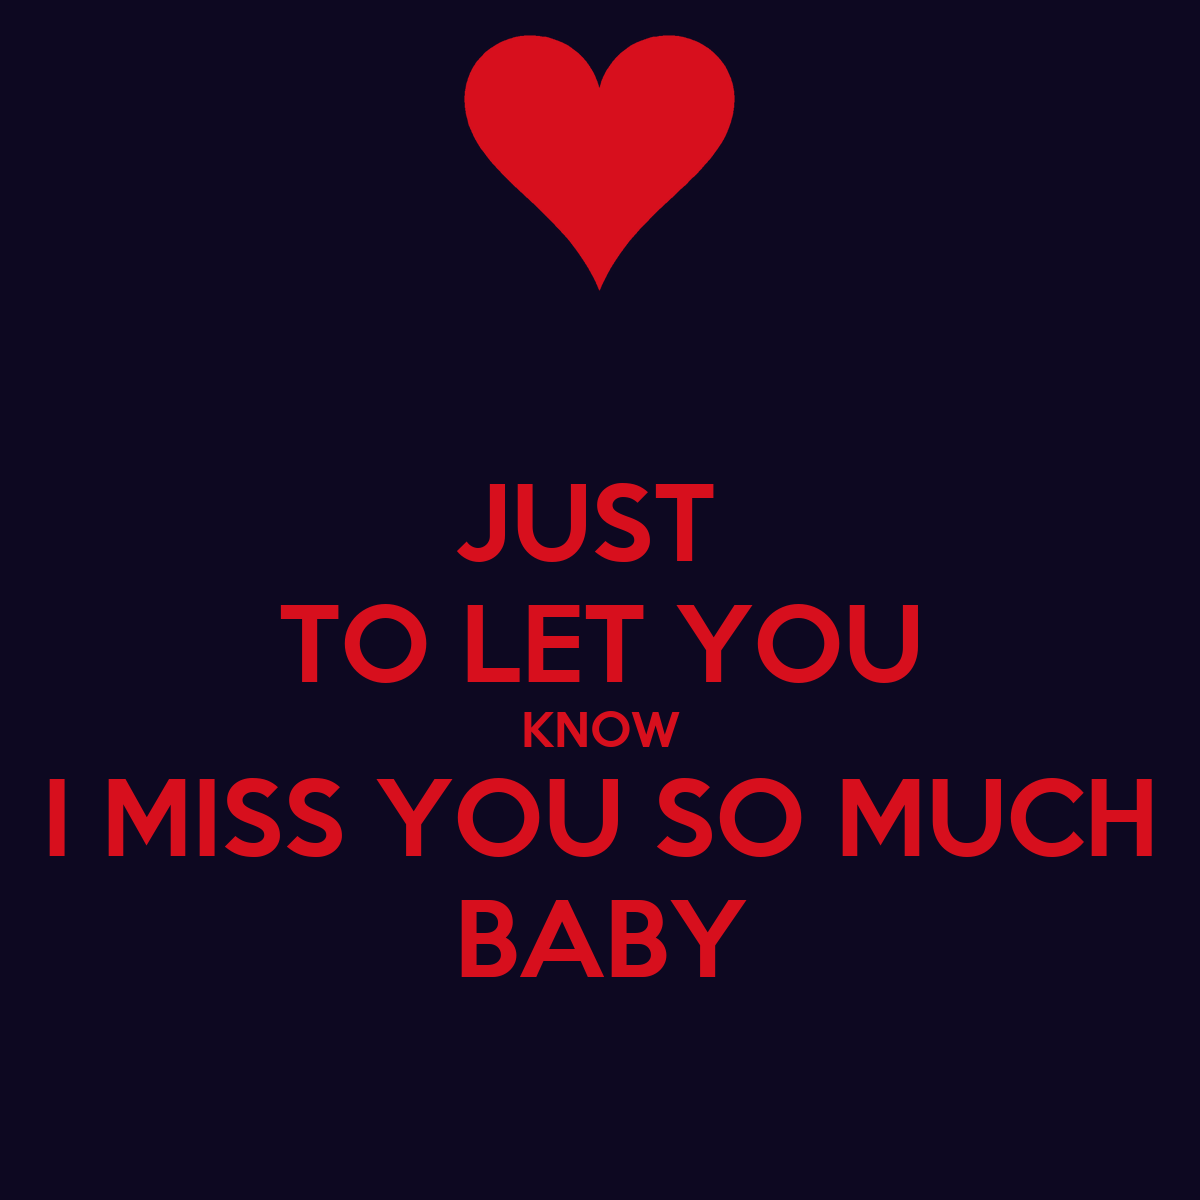 JUST TO LET YOU KNOW I MISS YOU SO MUCH BABY Poster